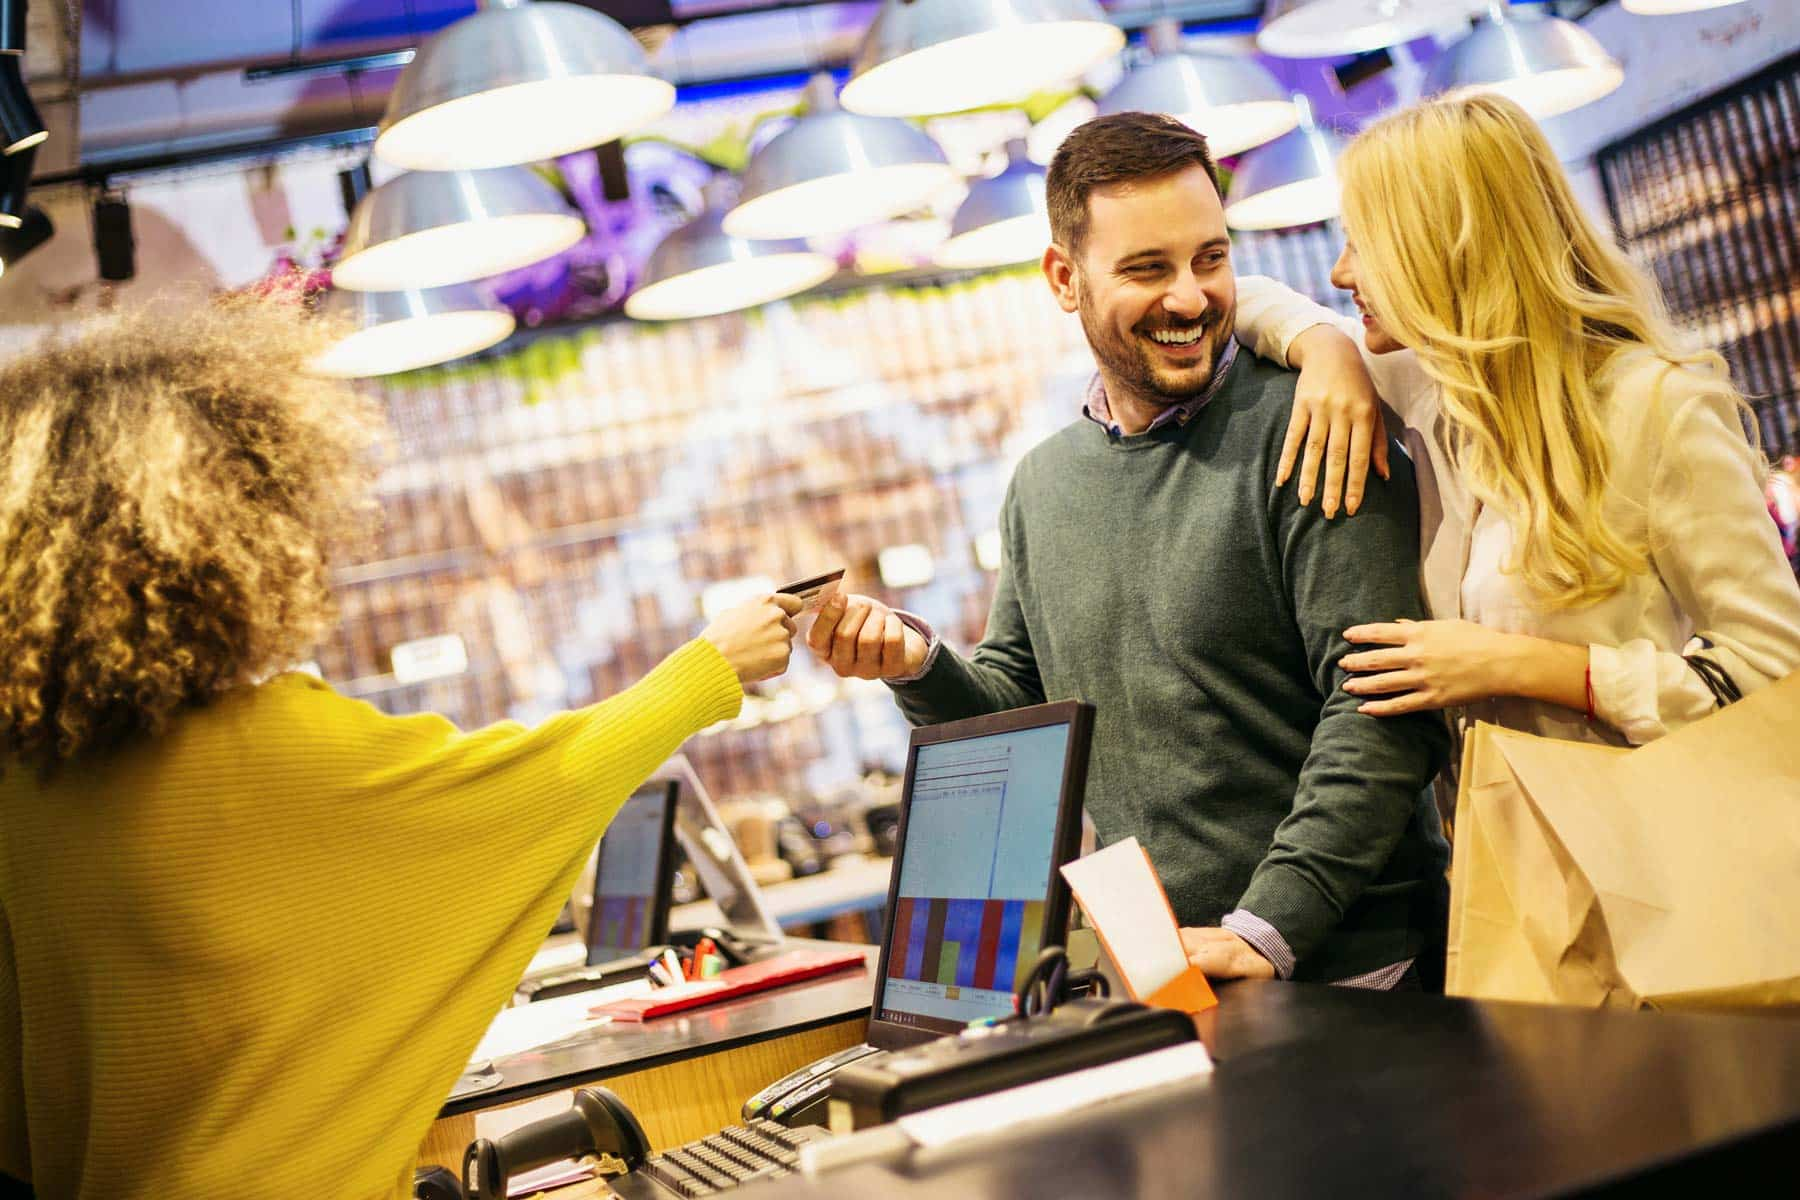 What's the Difference Between Customer Service and Customer Experience?